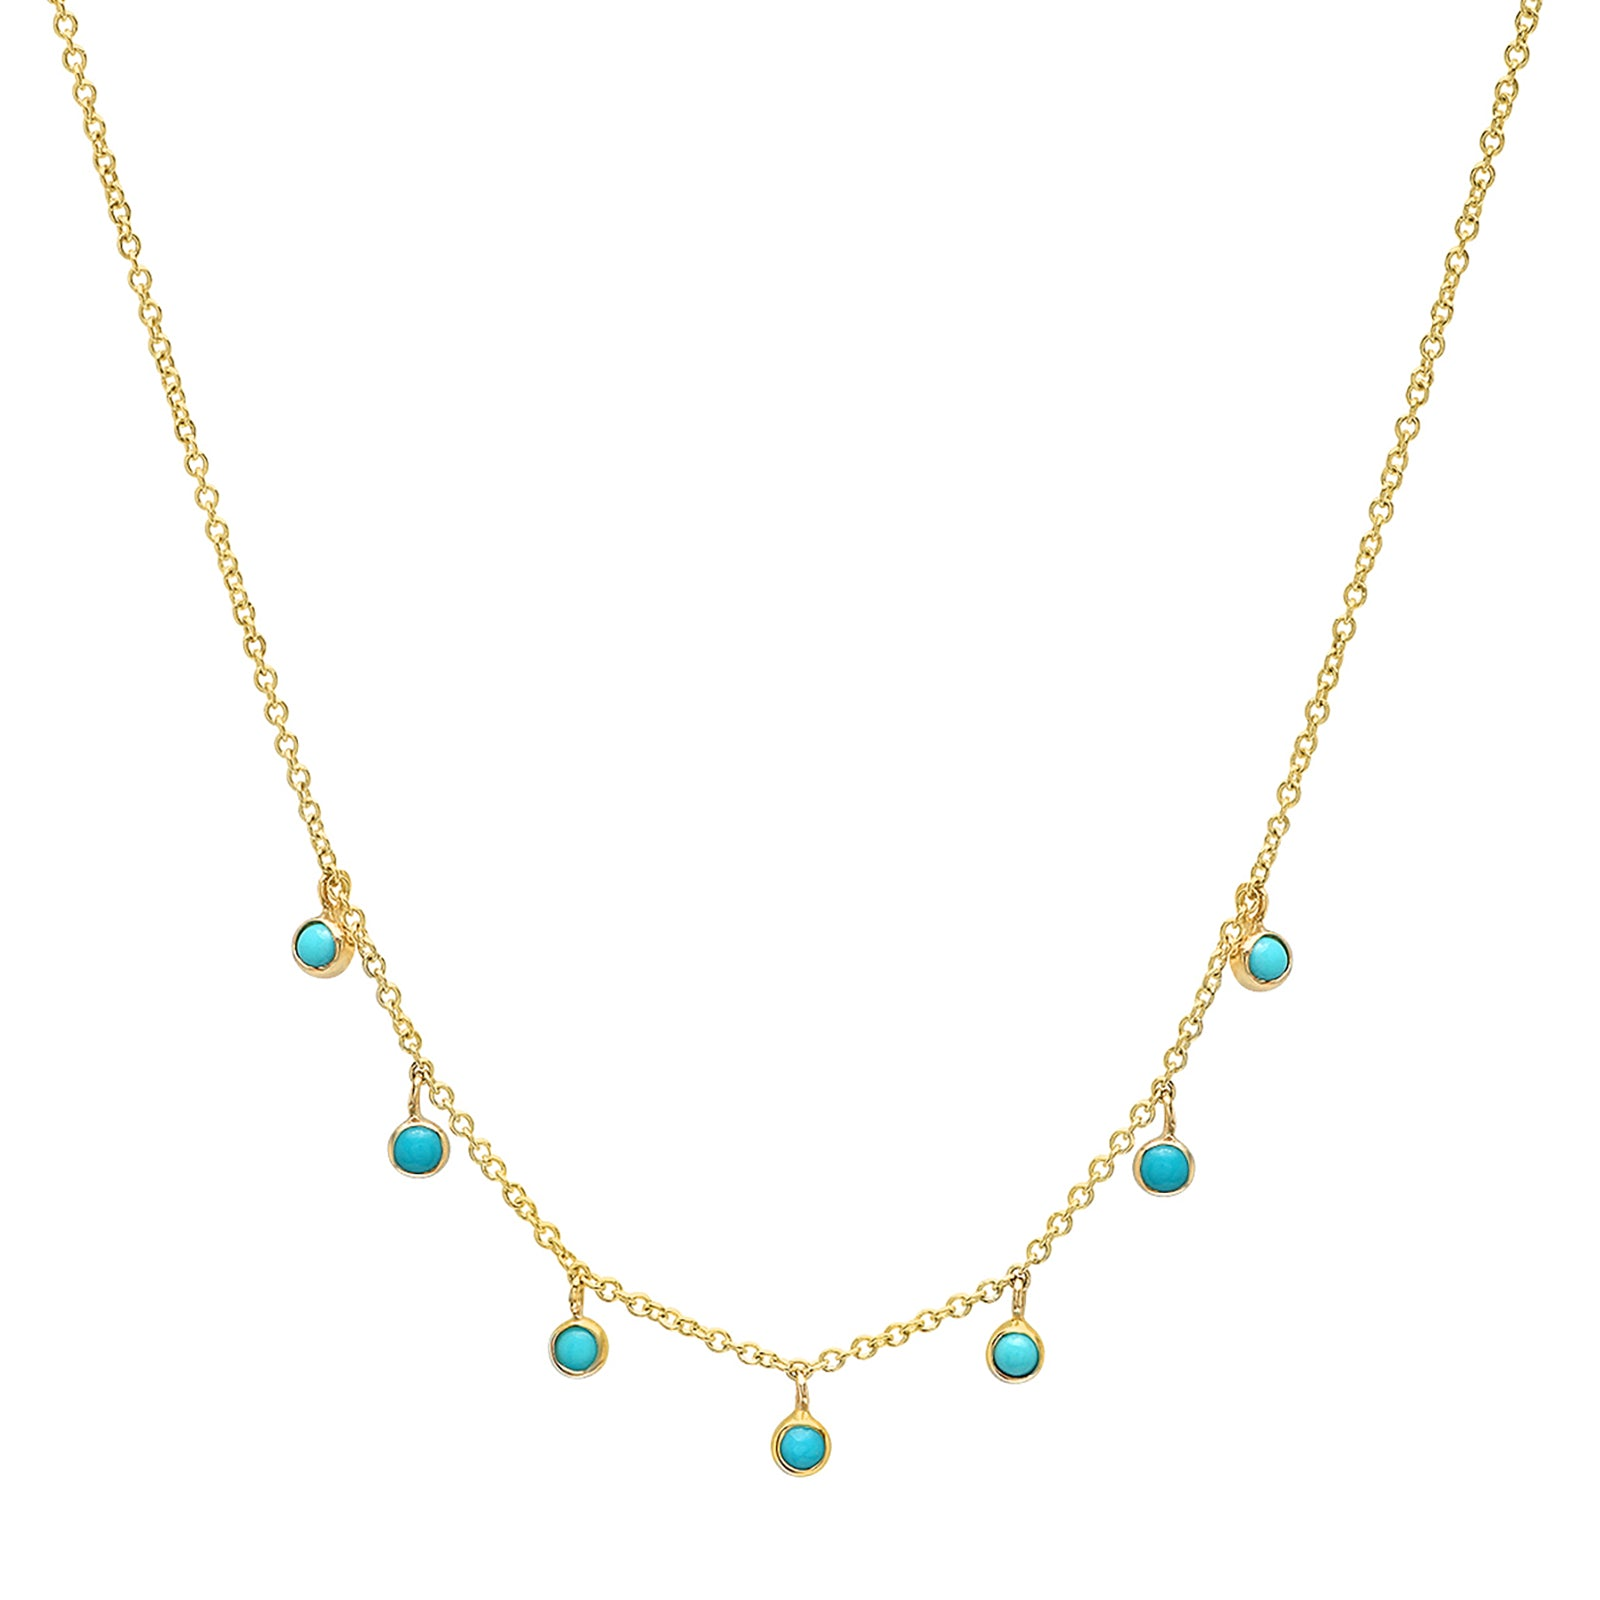 Jennifer Meyer Mini Bezel Dangle Necklace - Turquoise - Necklaces - Broken English Jewelry